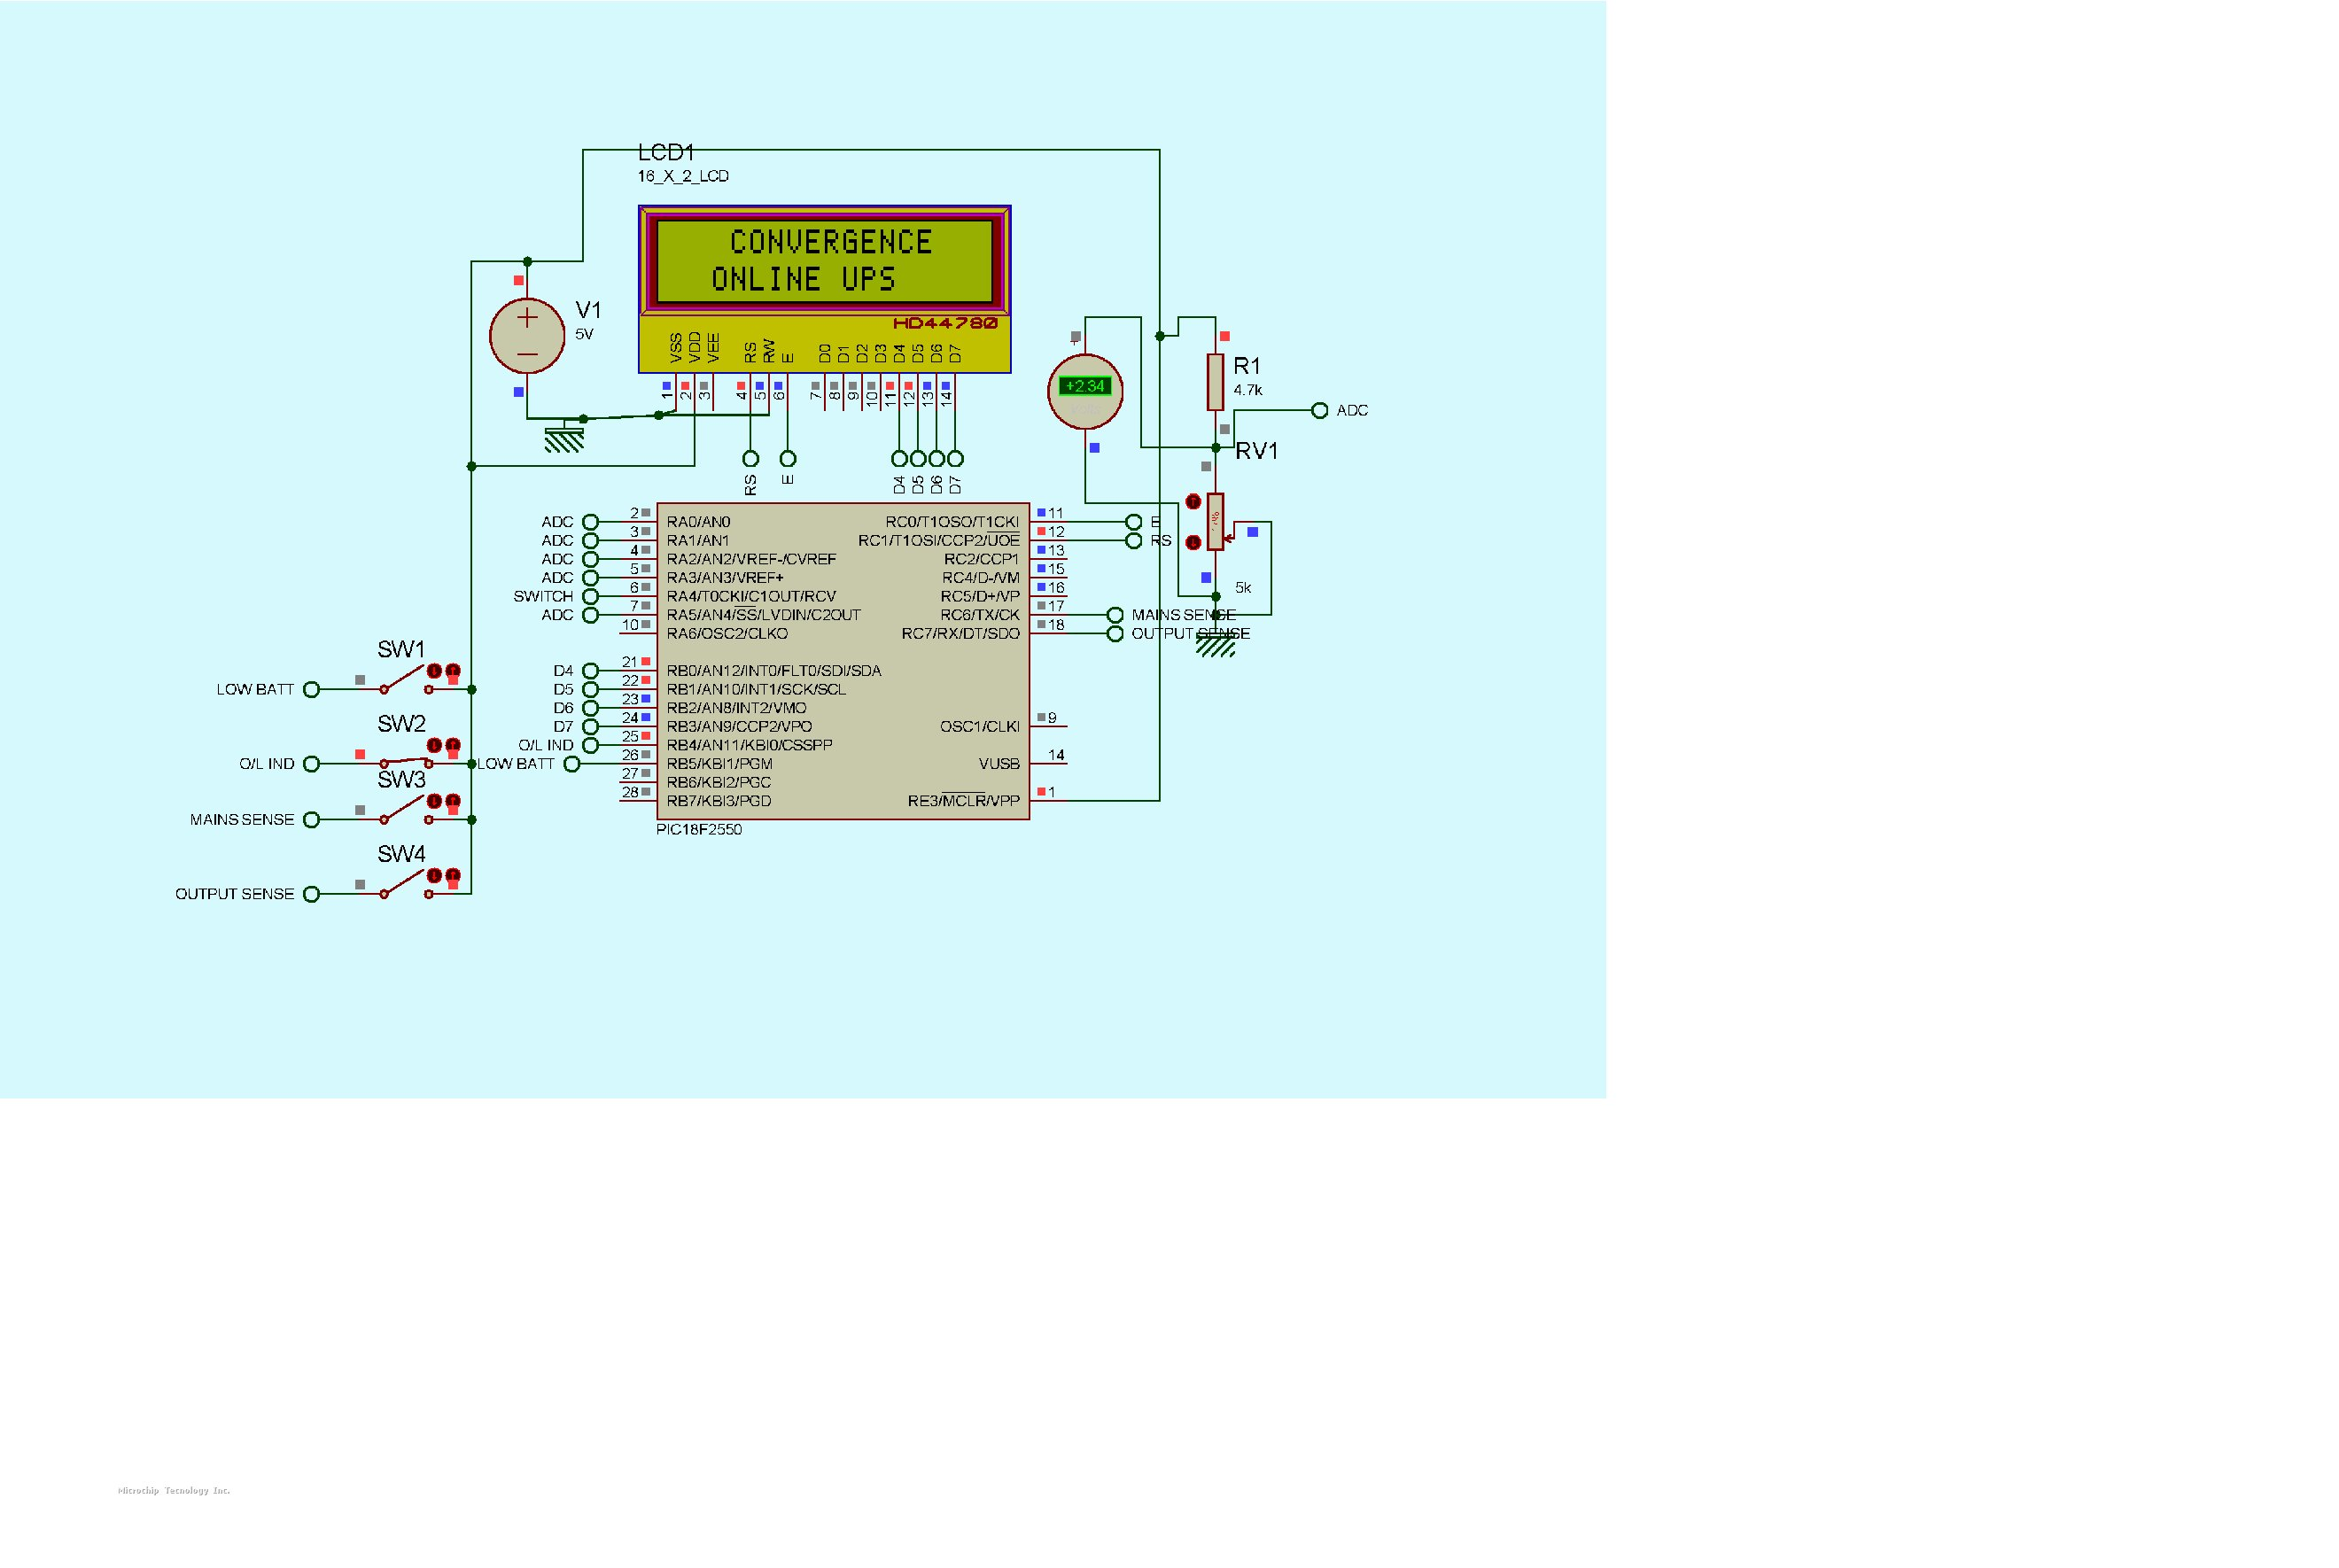 Lcd Is Showing Black Boxes In First Row 16x2 Jhd162a Parallel Port Pic Programmer For Pic18f2550 Interfaced With